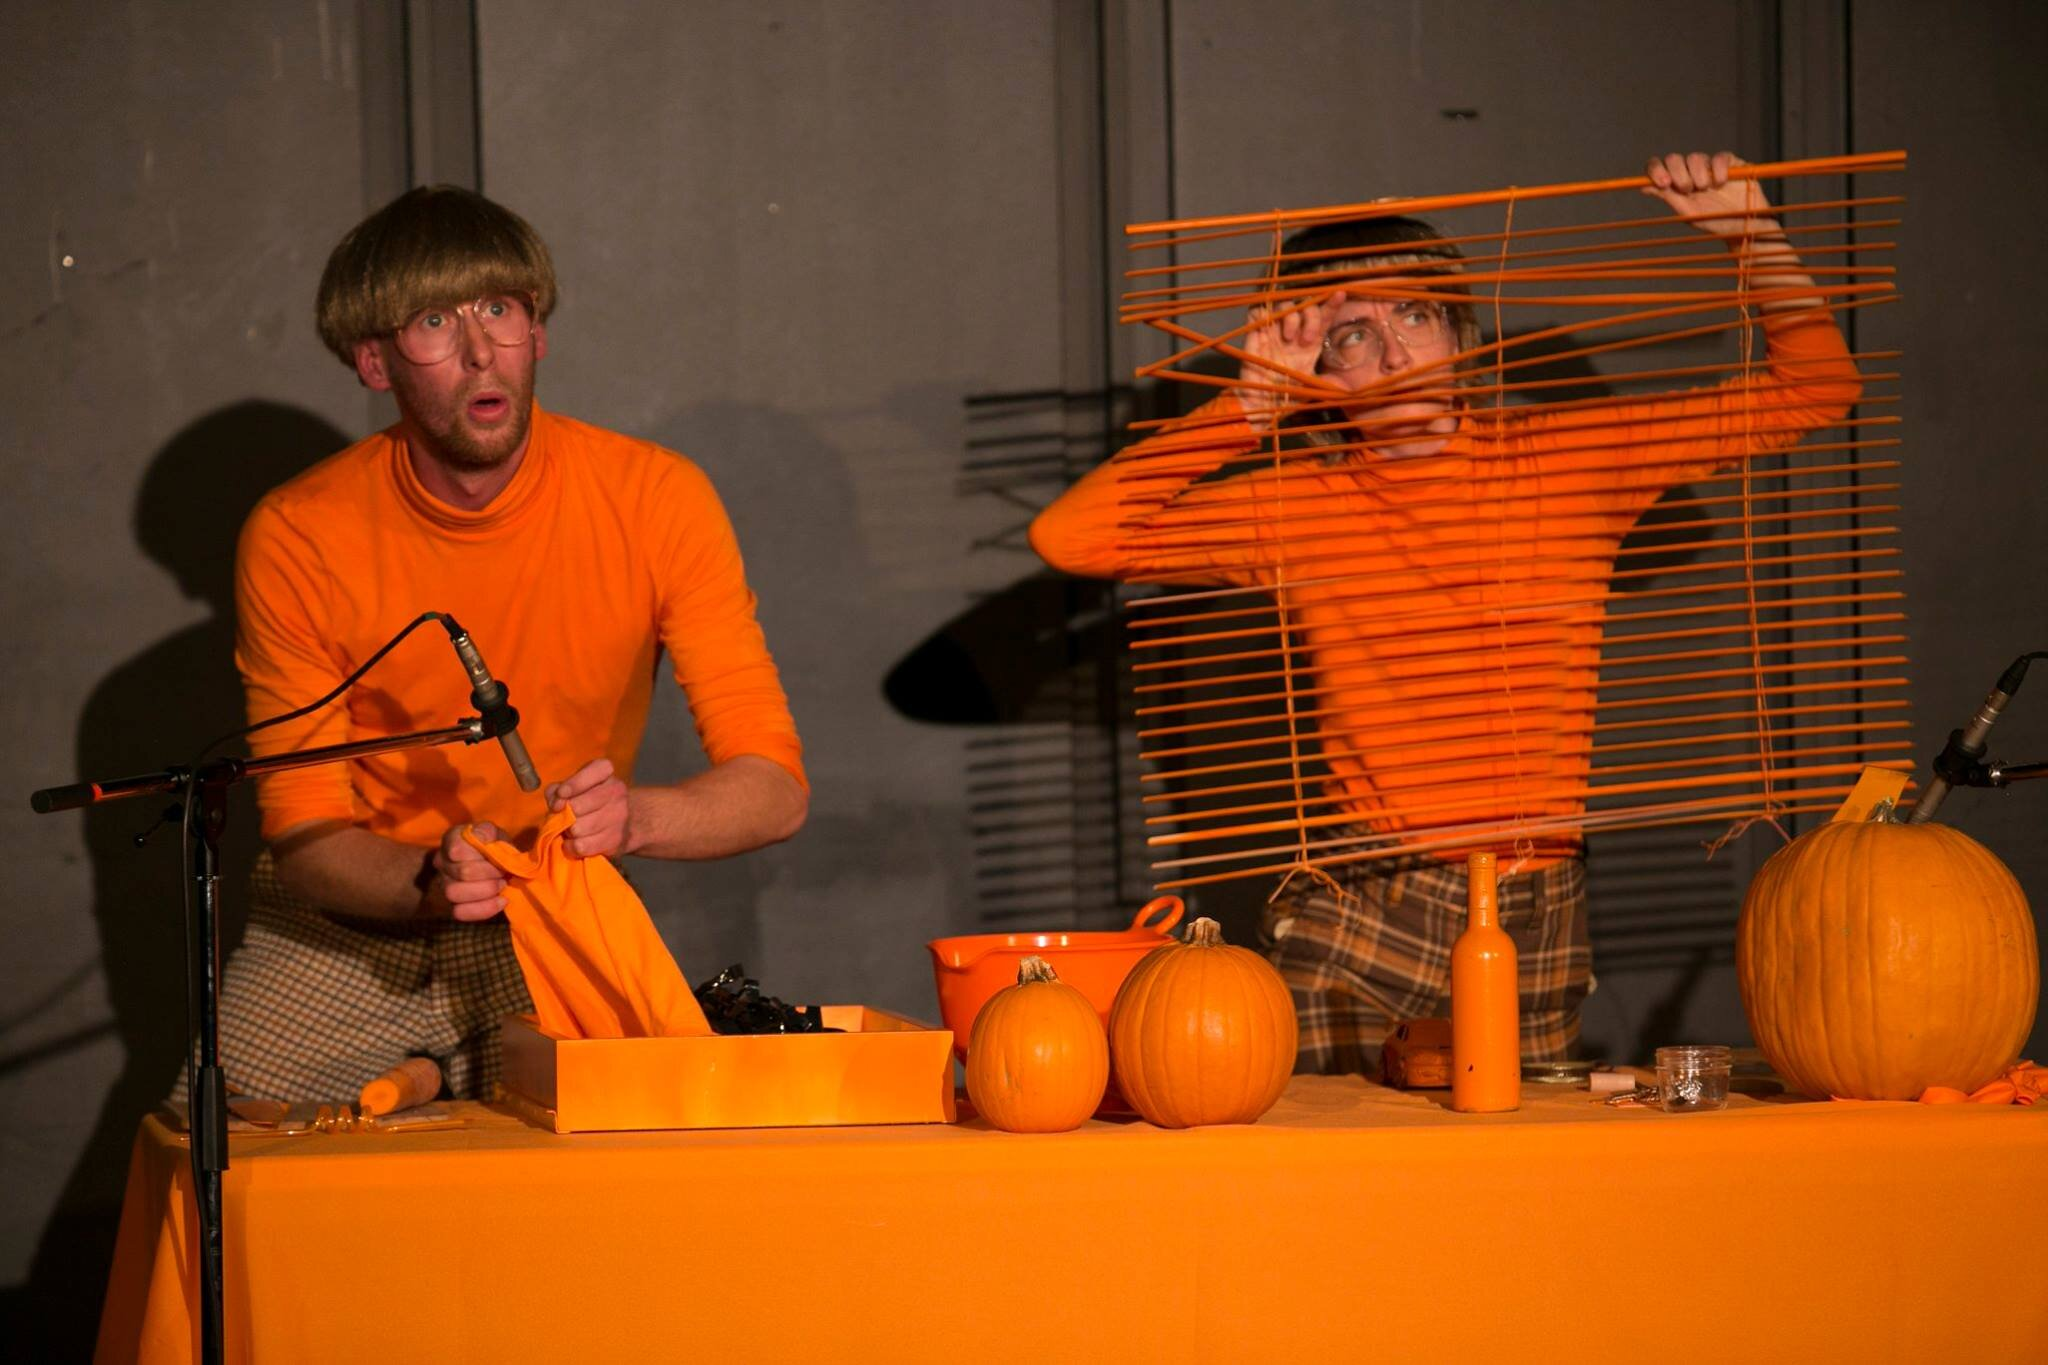 Mitchel Rose (L) and Madeleine Hall (R) in their Fresh Meat creation  Folie . Photo by Ming Wu.